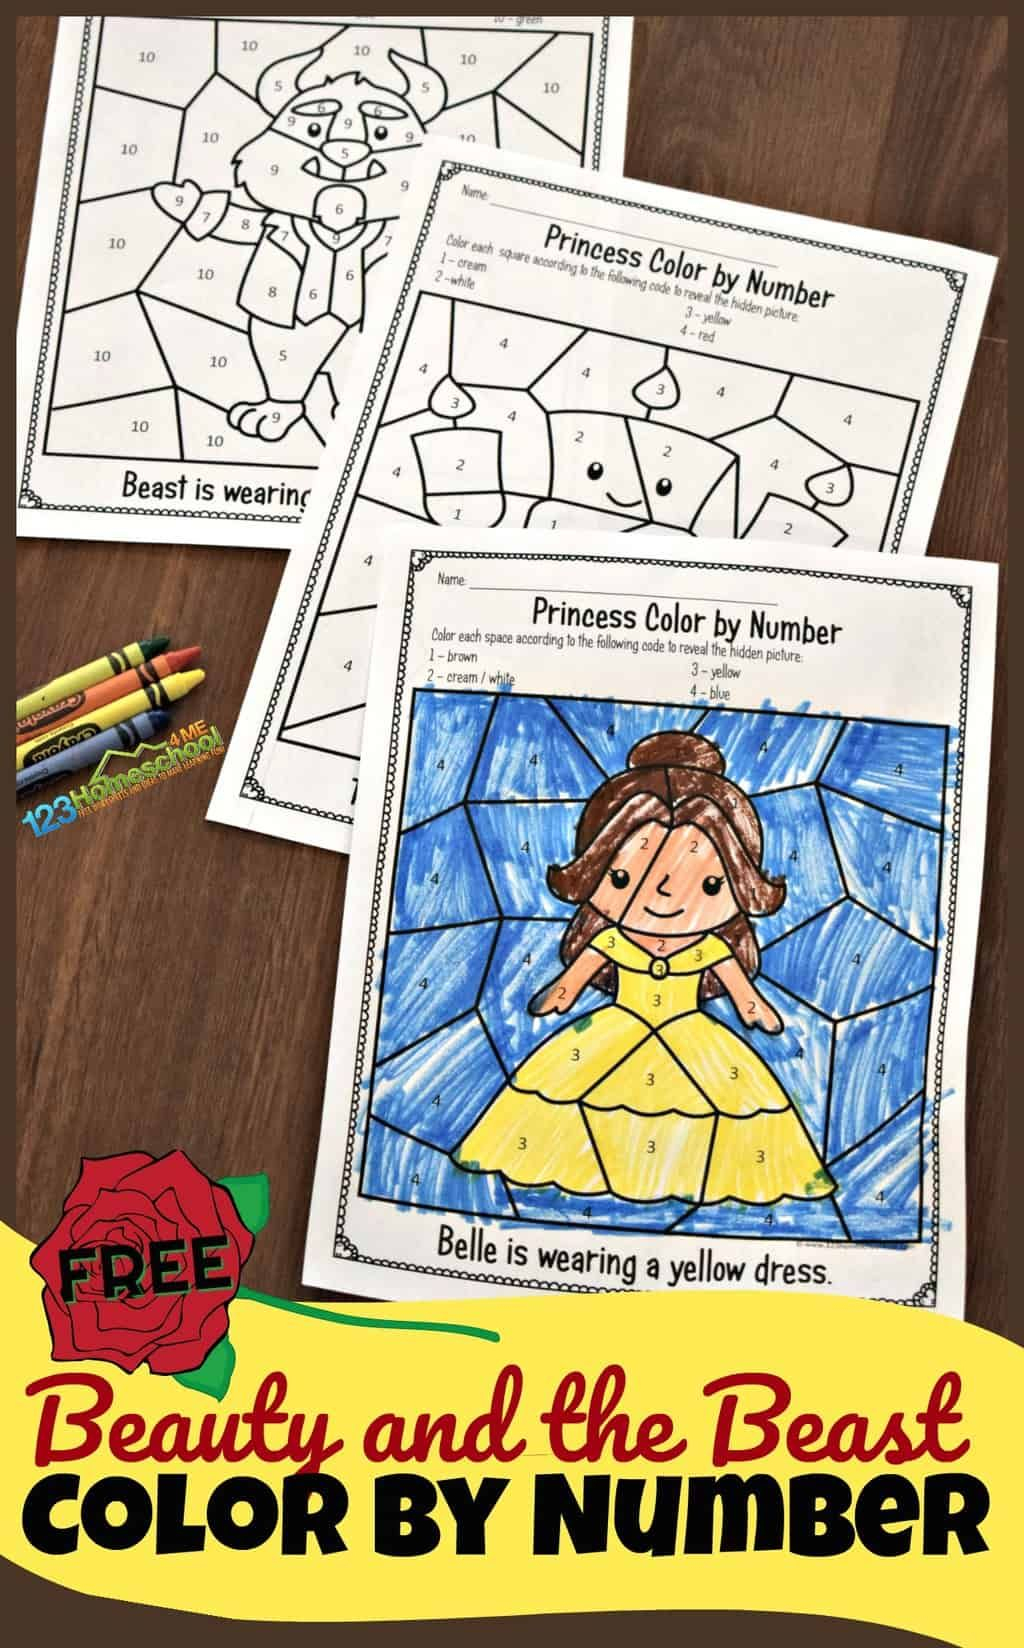 Free Beauty And The Beast Colornumber Worksheets | Hs- Preschool | The Printable Princess Worksheets